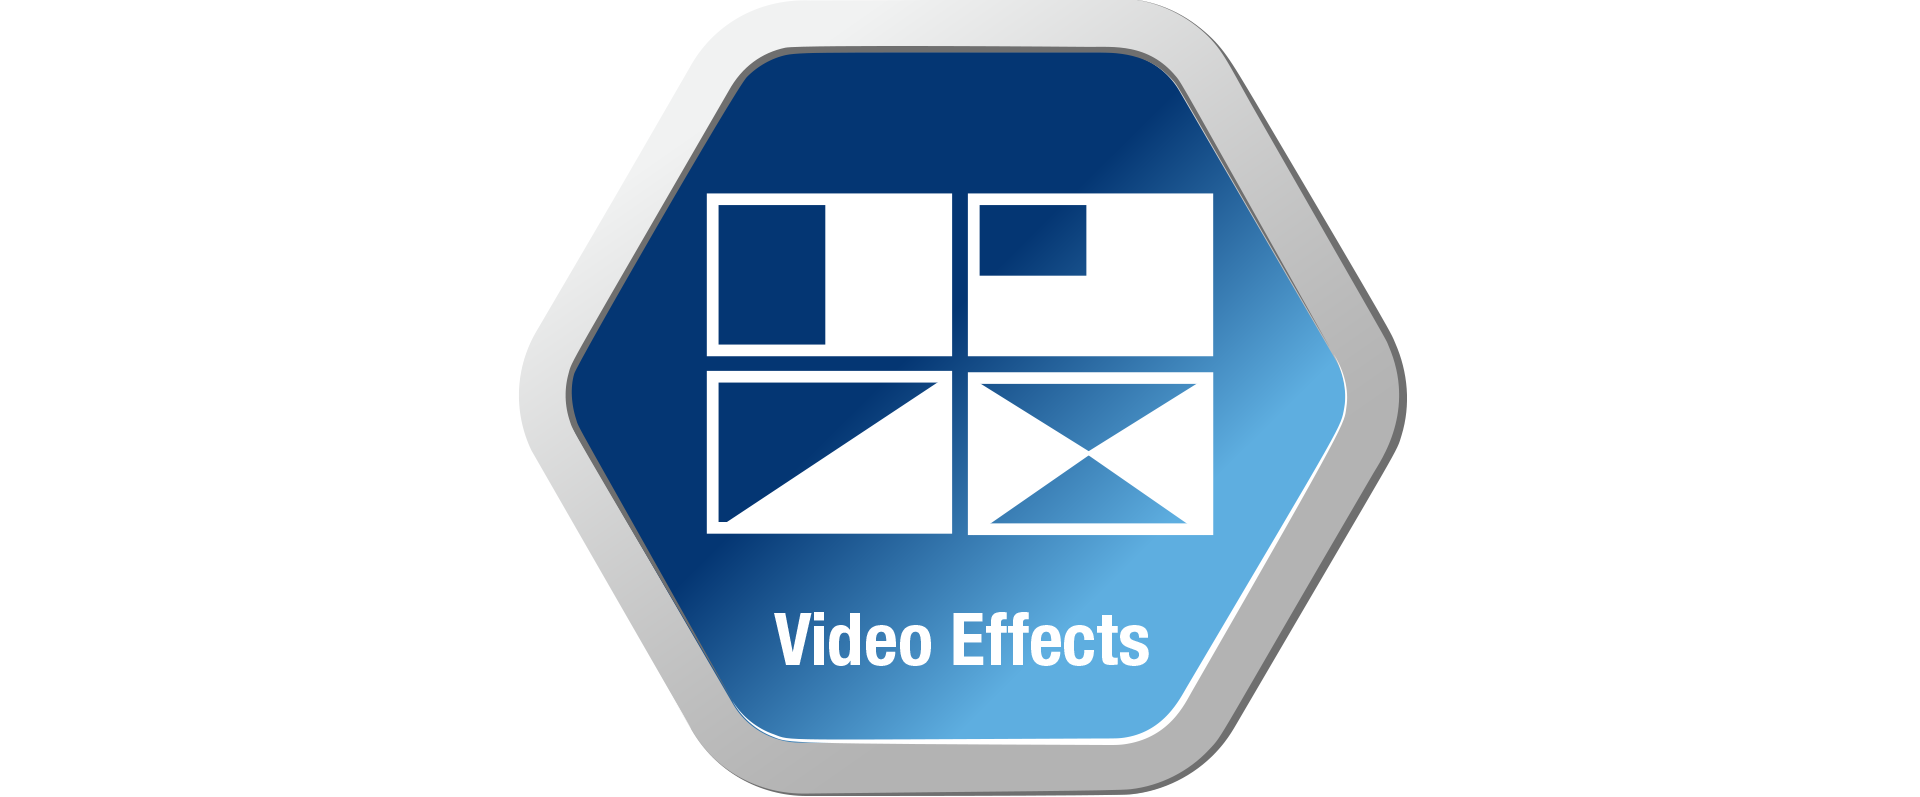 Versatile Video Effects